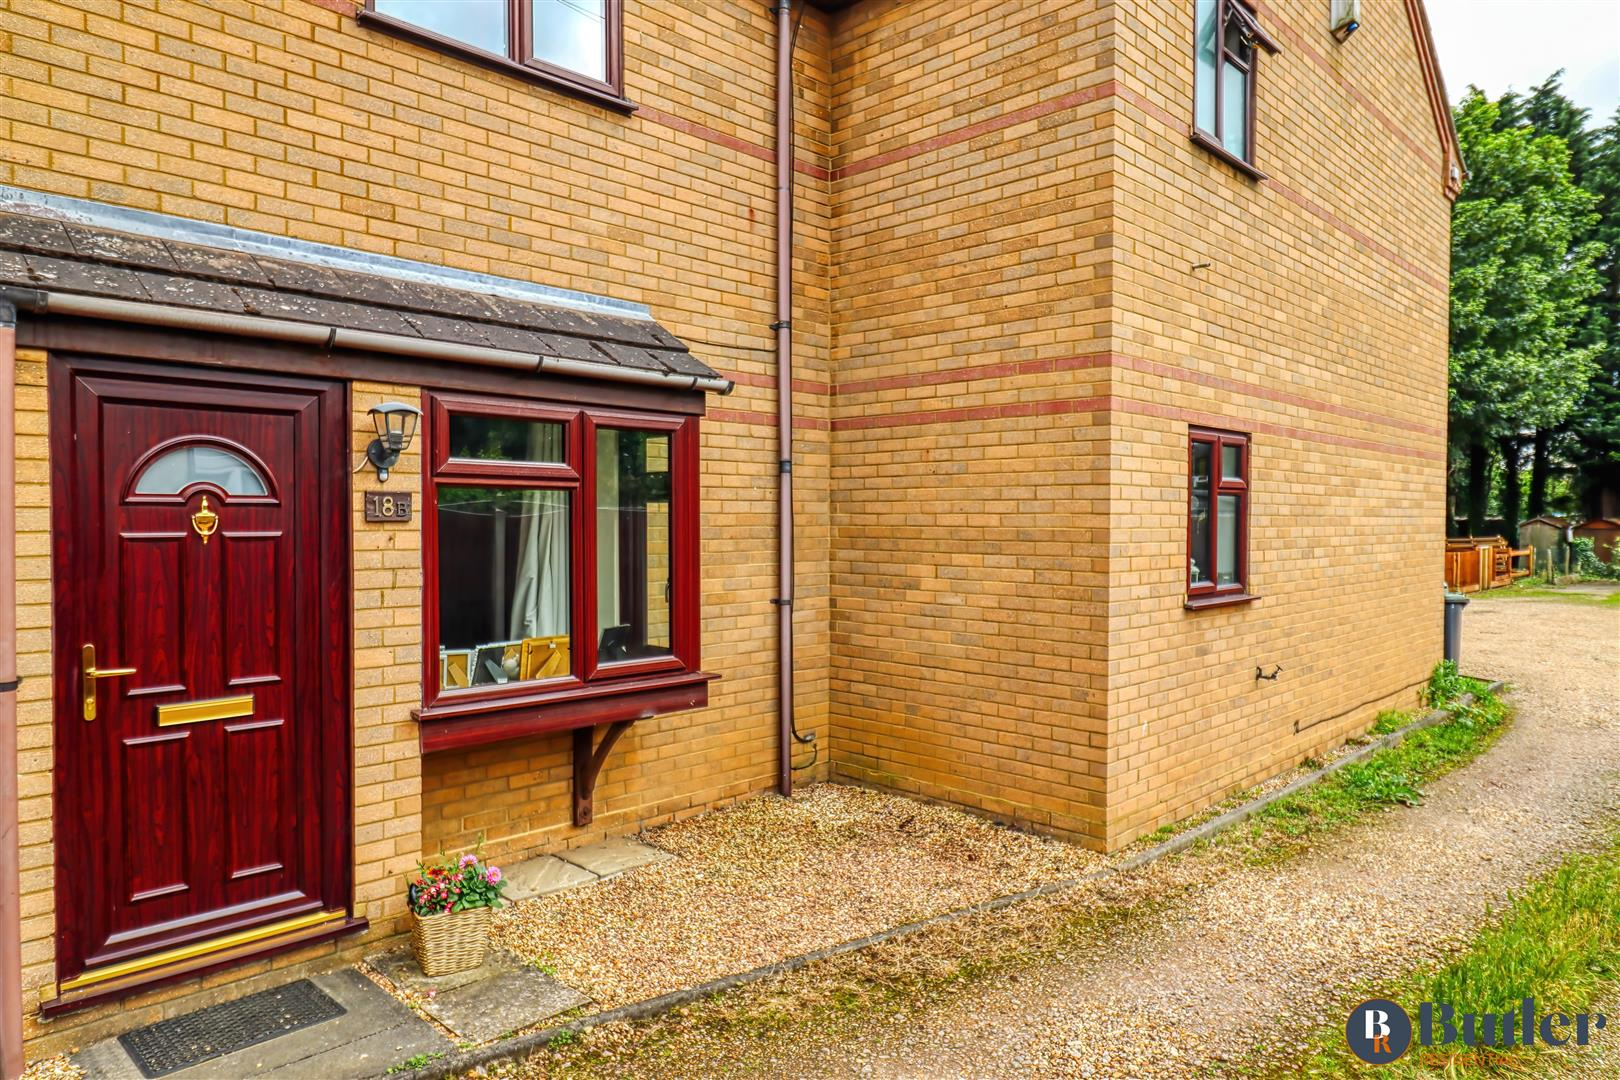 1 bed house for sale in Fakeswell Lane, Henlow, SG16